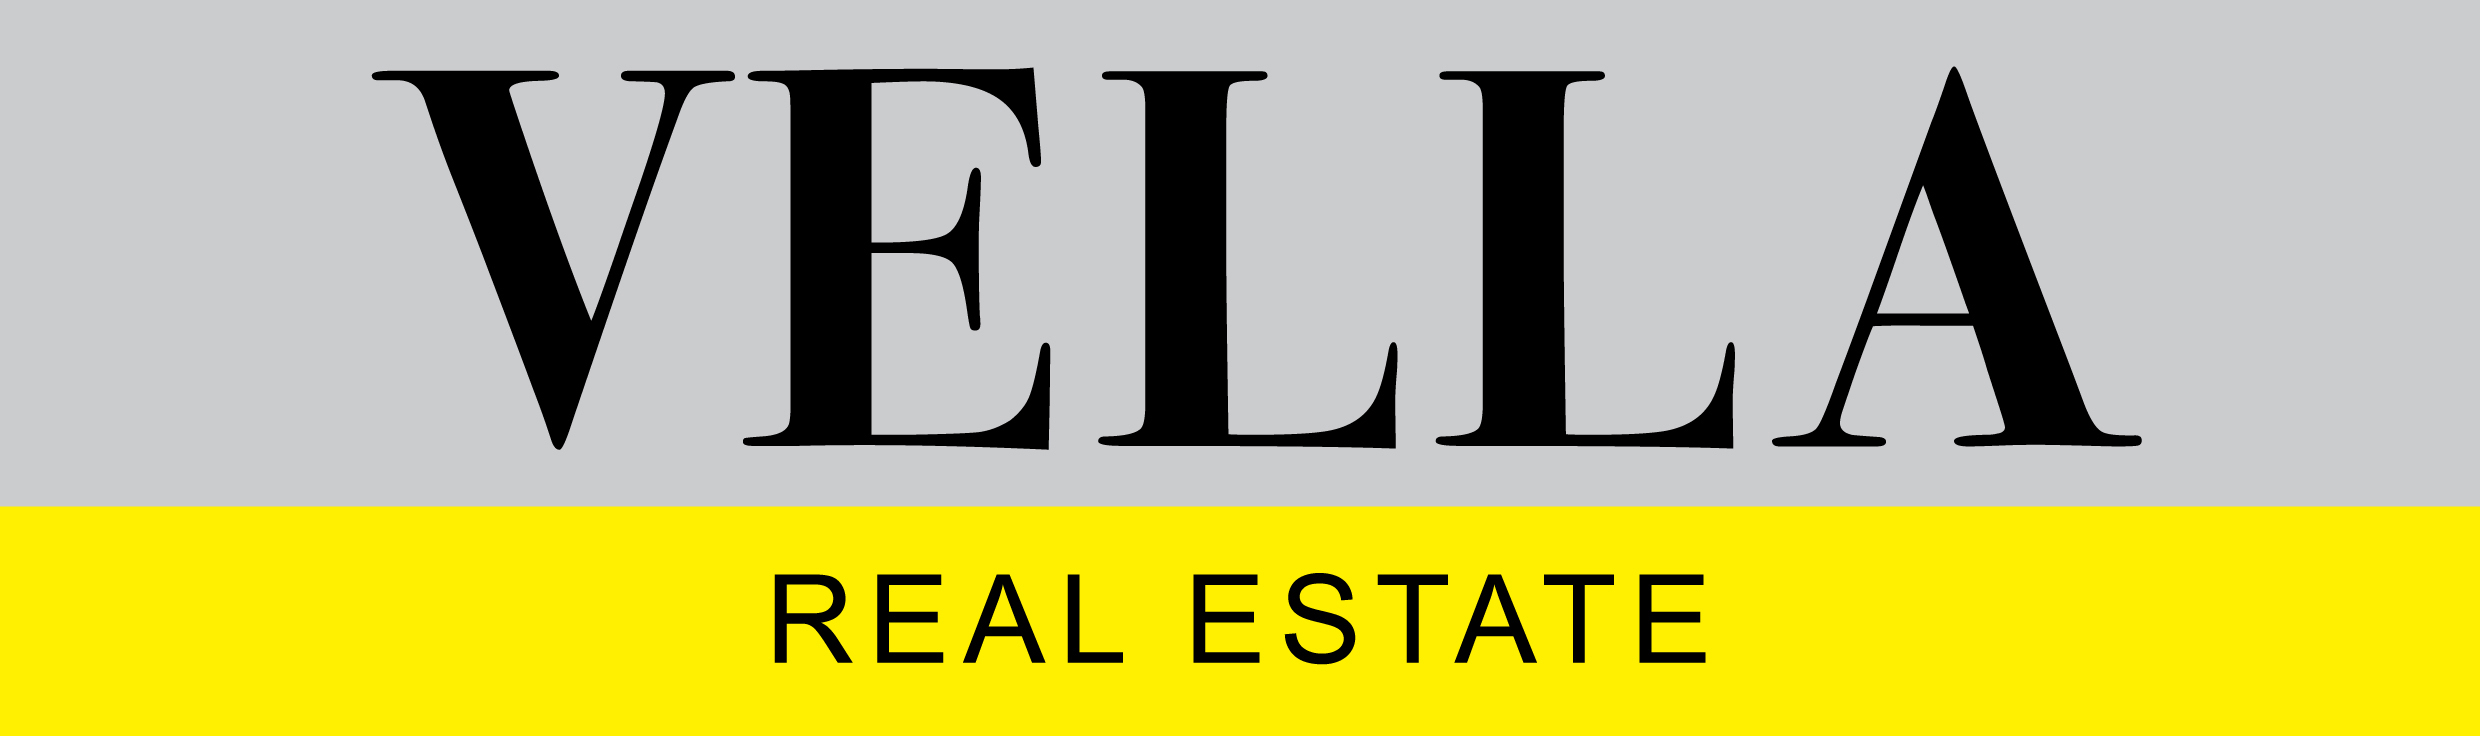 Vella Real Estate